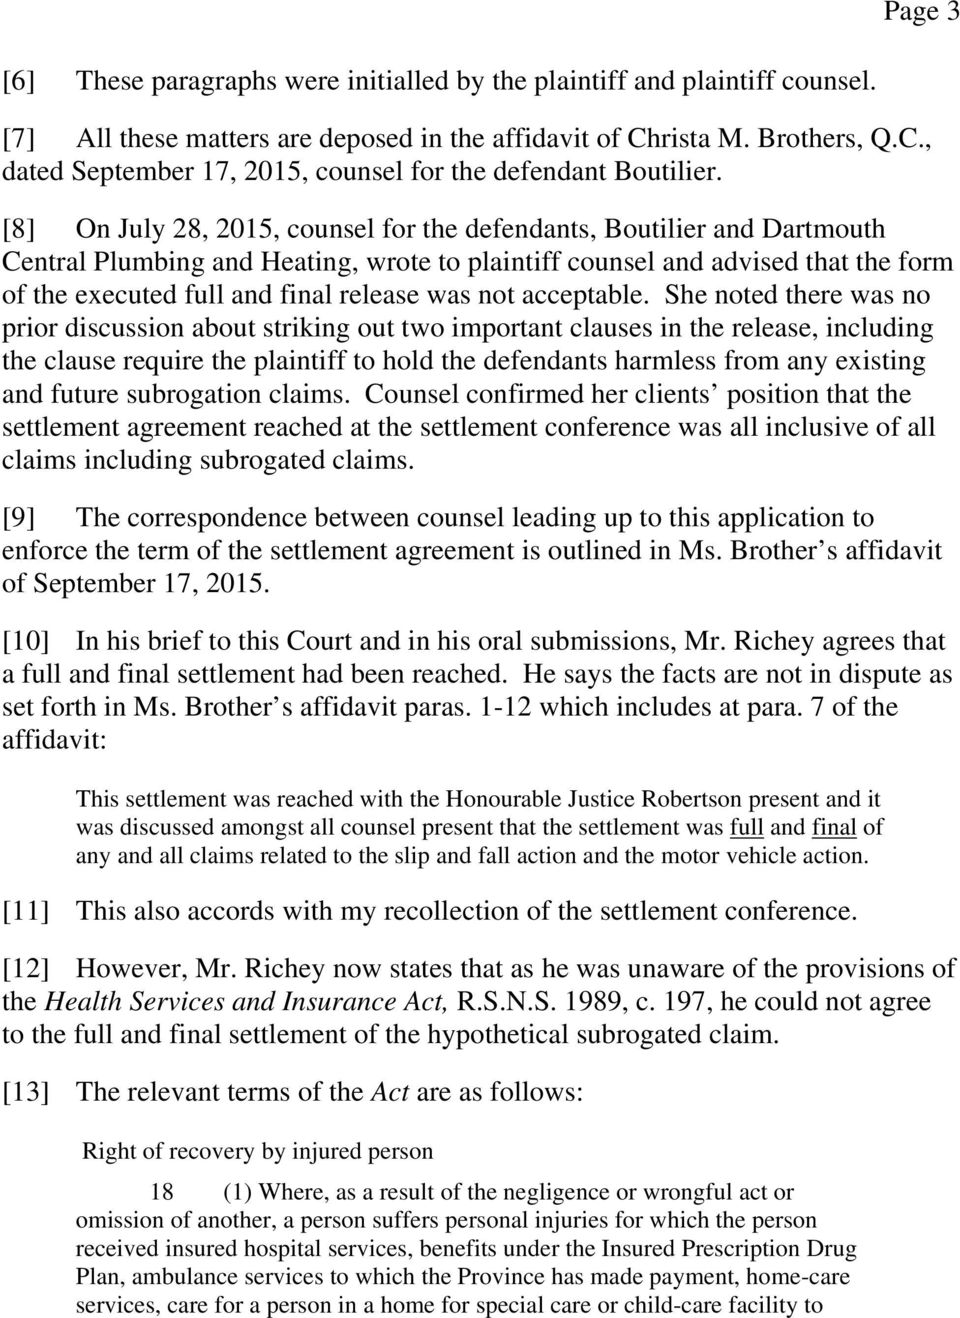 [8] On July 28, 2015, counsel for the defendants, Boutilier and Dartmouth Central Plumbing and Heating, wrote to plaintiff counsel and advised that the form of the executed full and final release was